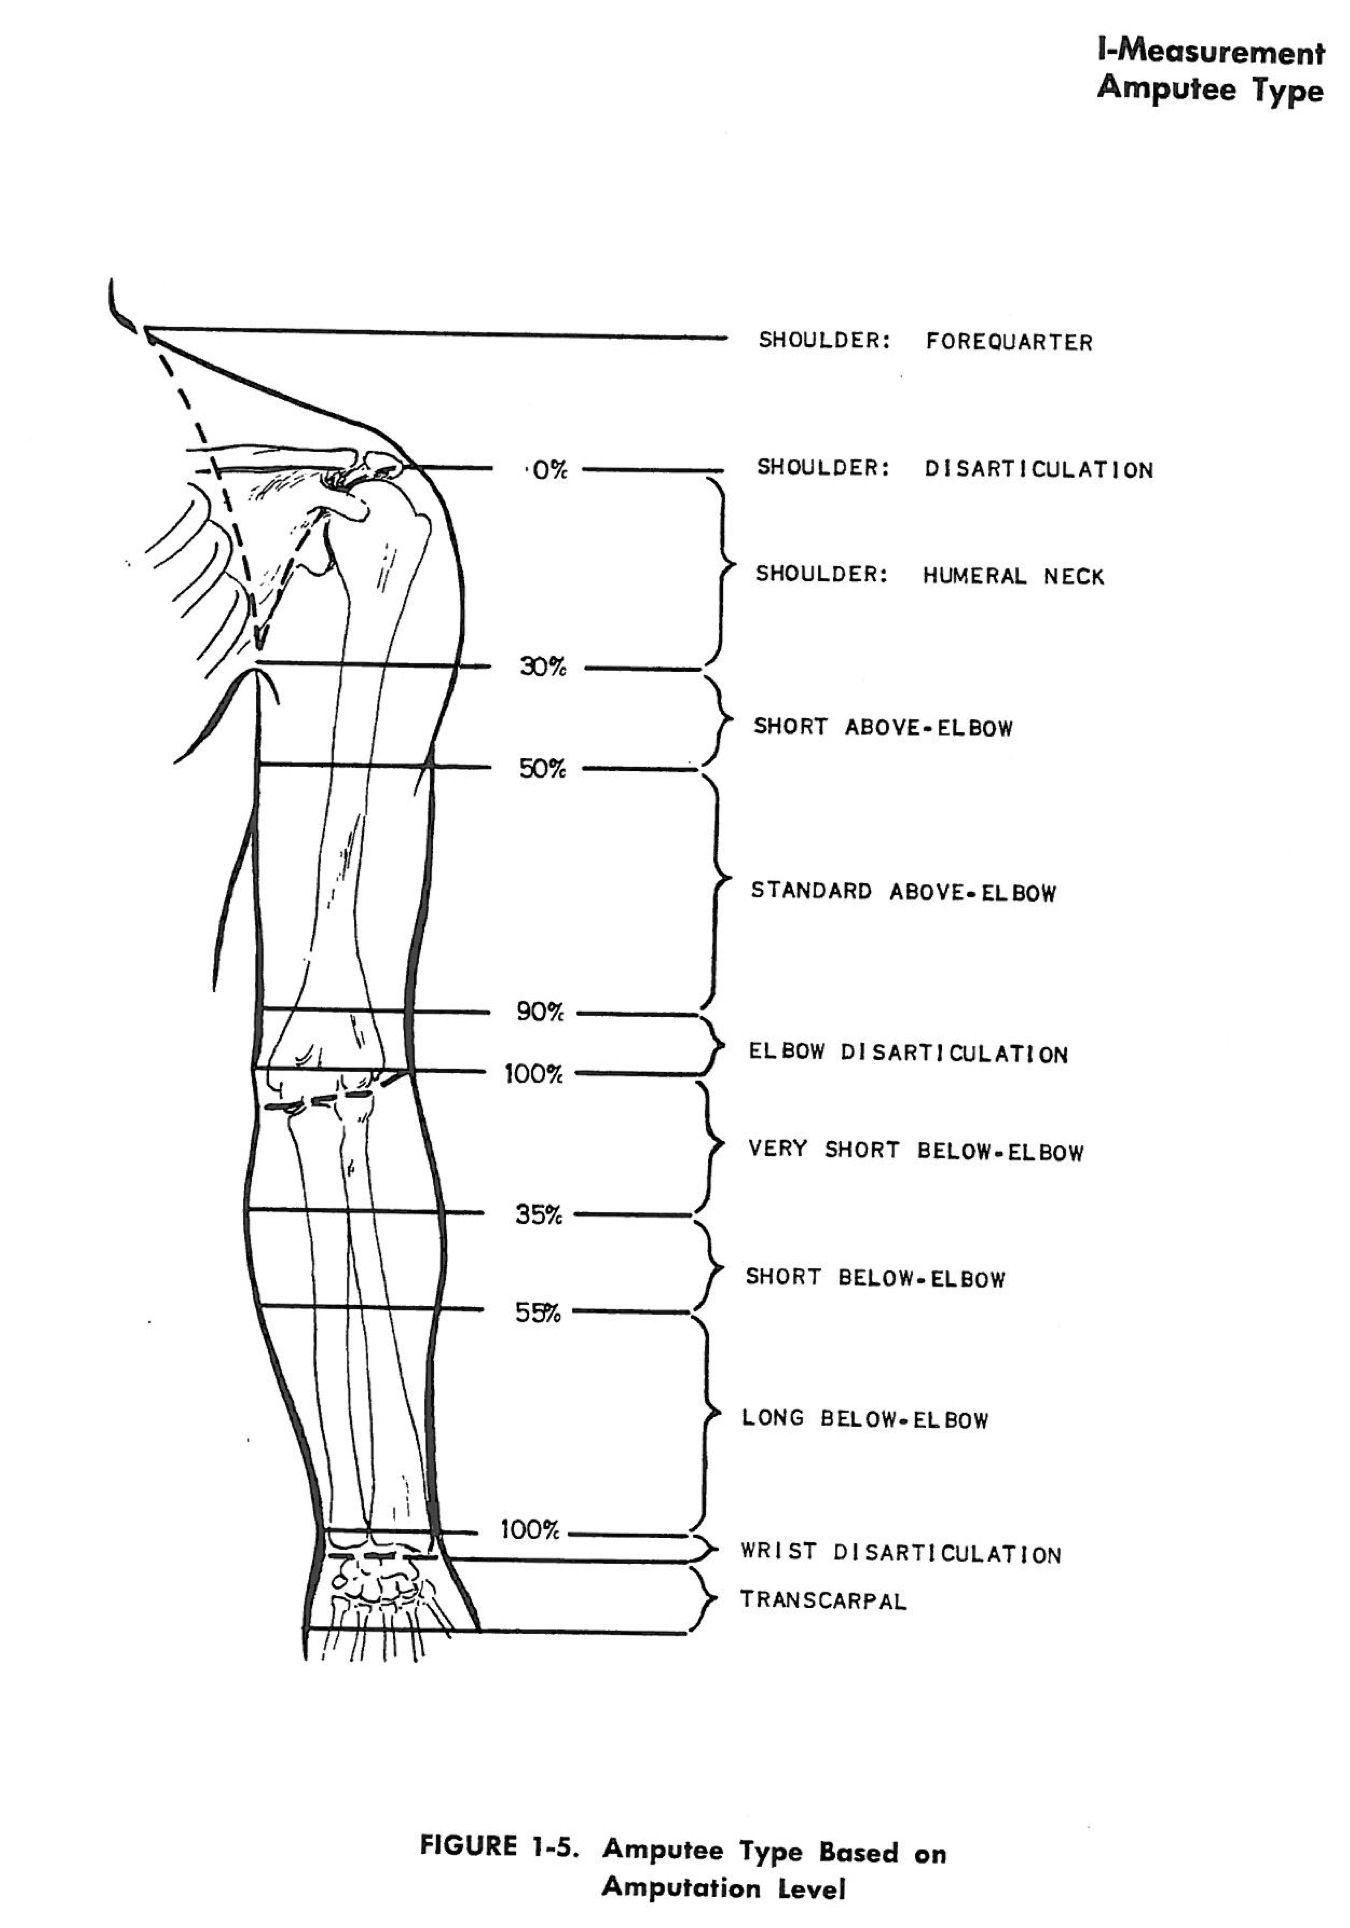 medium resolution of amputee nomenclature by level of upper extremity amputation